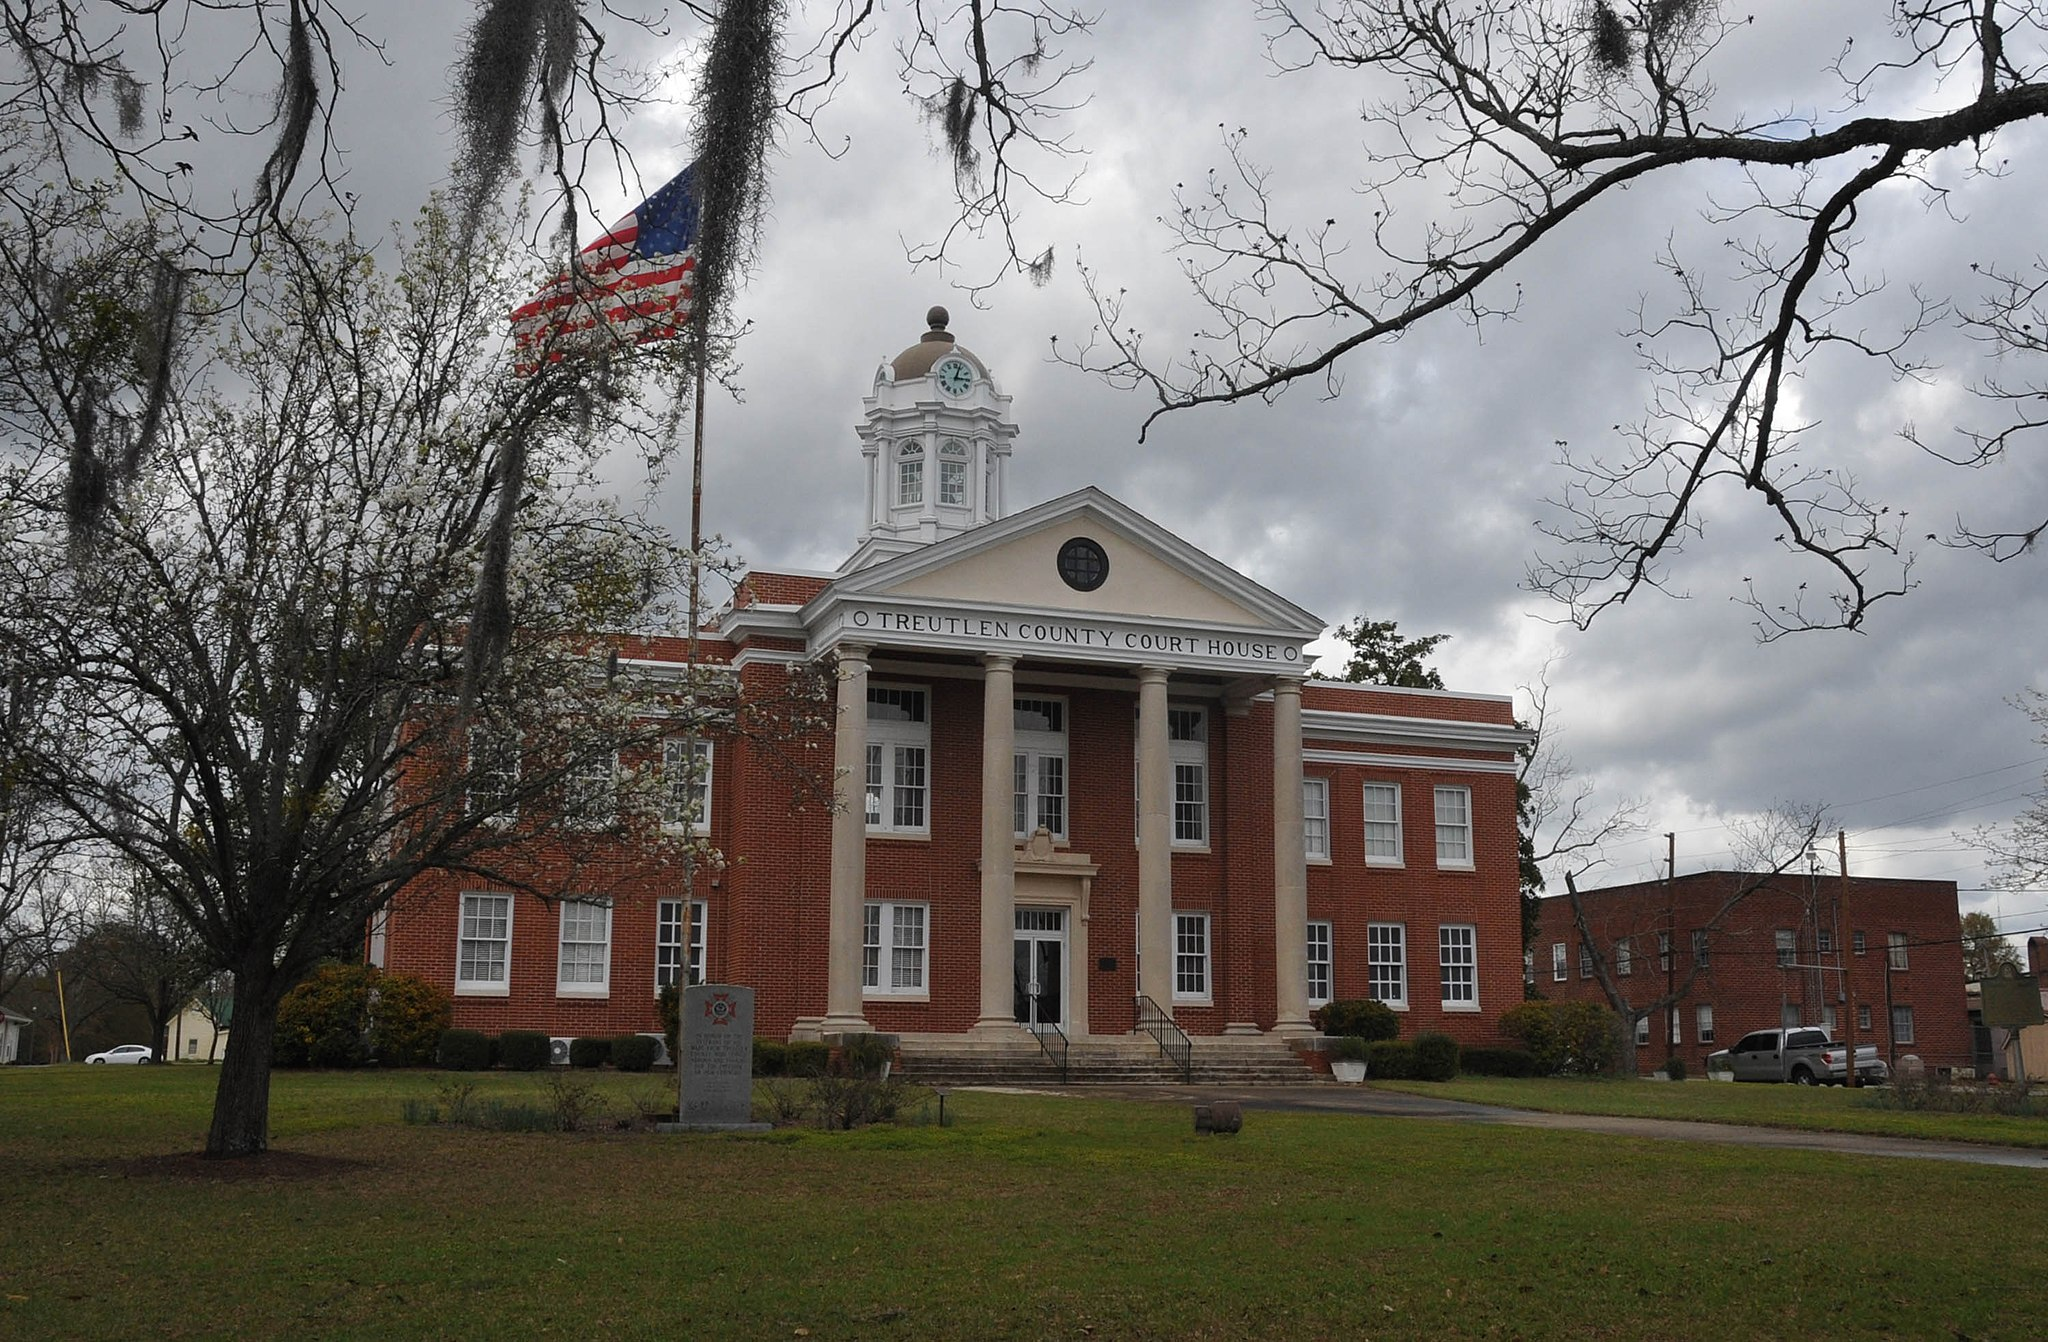 TREUTLEN COUNTY COURTHOUSE